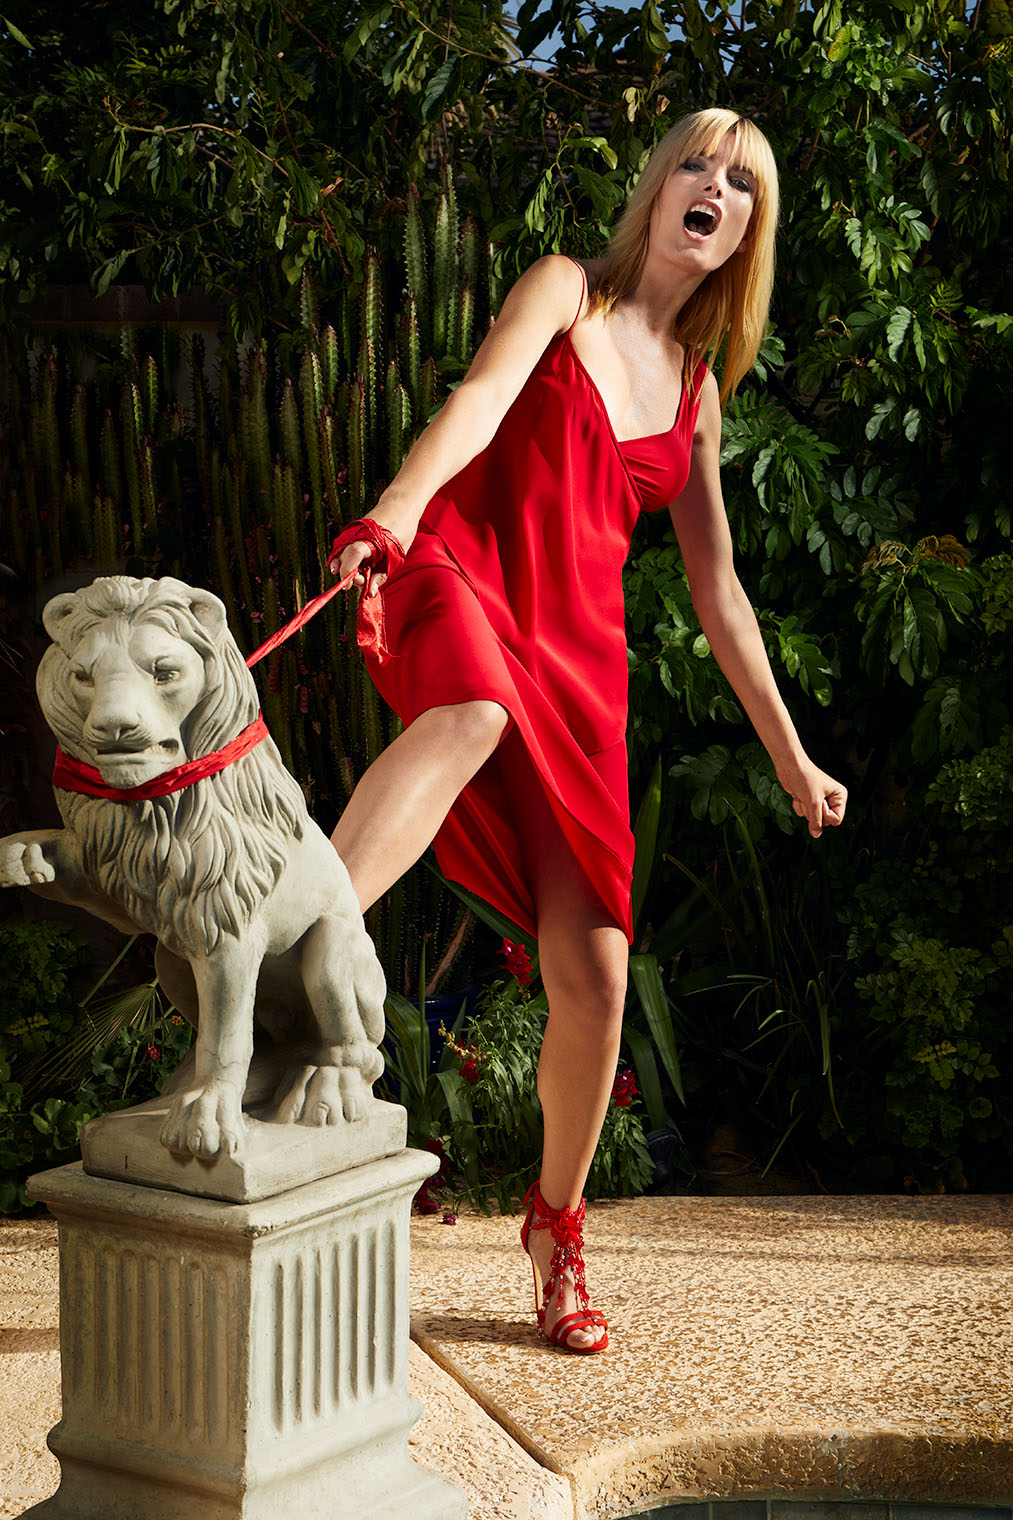 Fashion Photographer Los Angeles New York - the lion